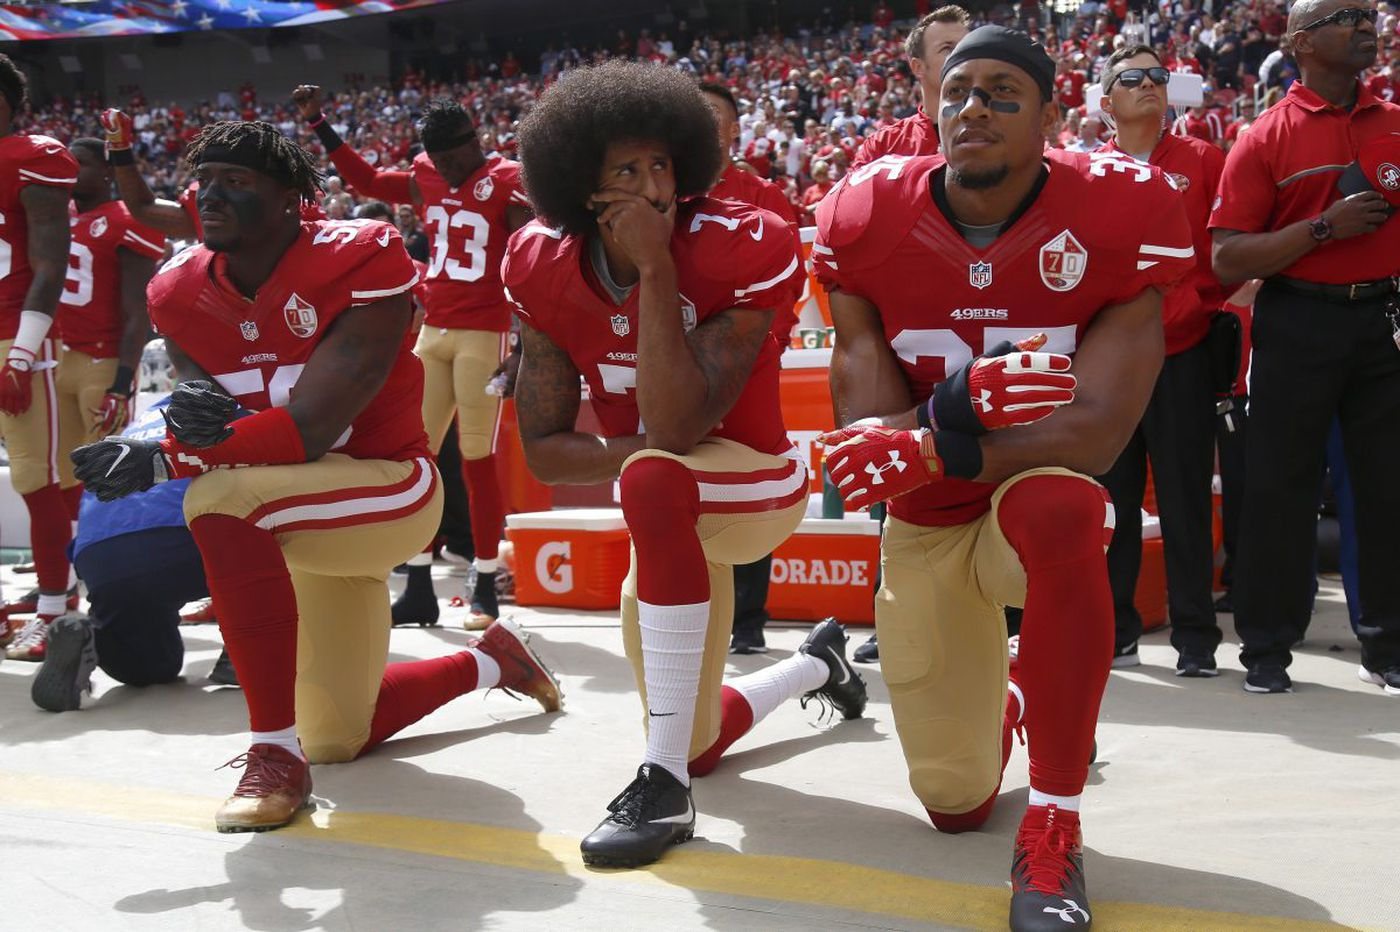 Colin Kaepernick to donate $10,000 to Philadelphia's Youth Service Inc., Meek Mill to match